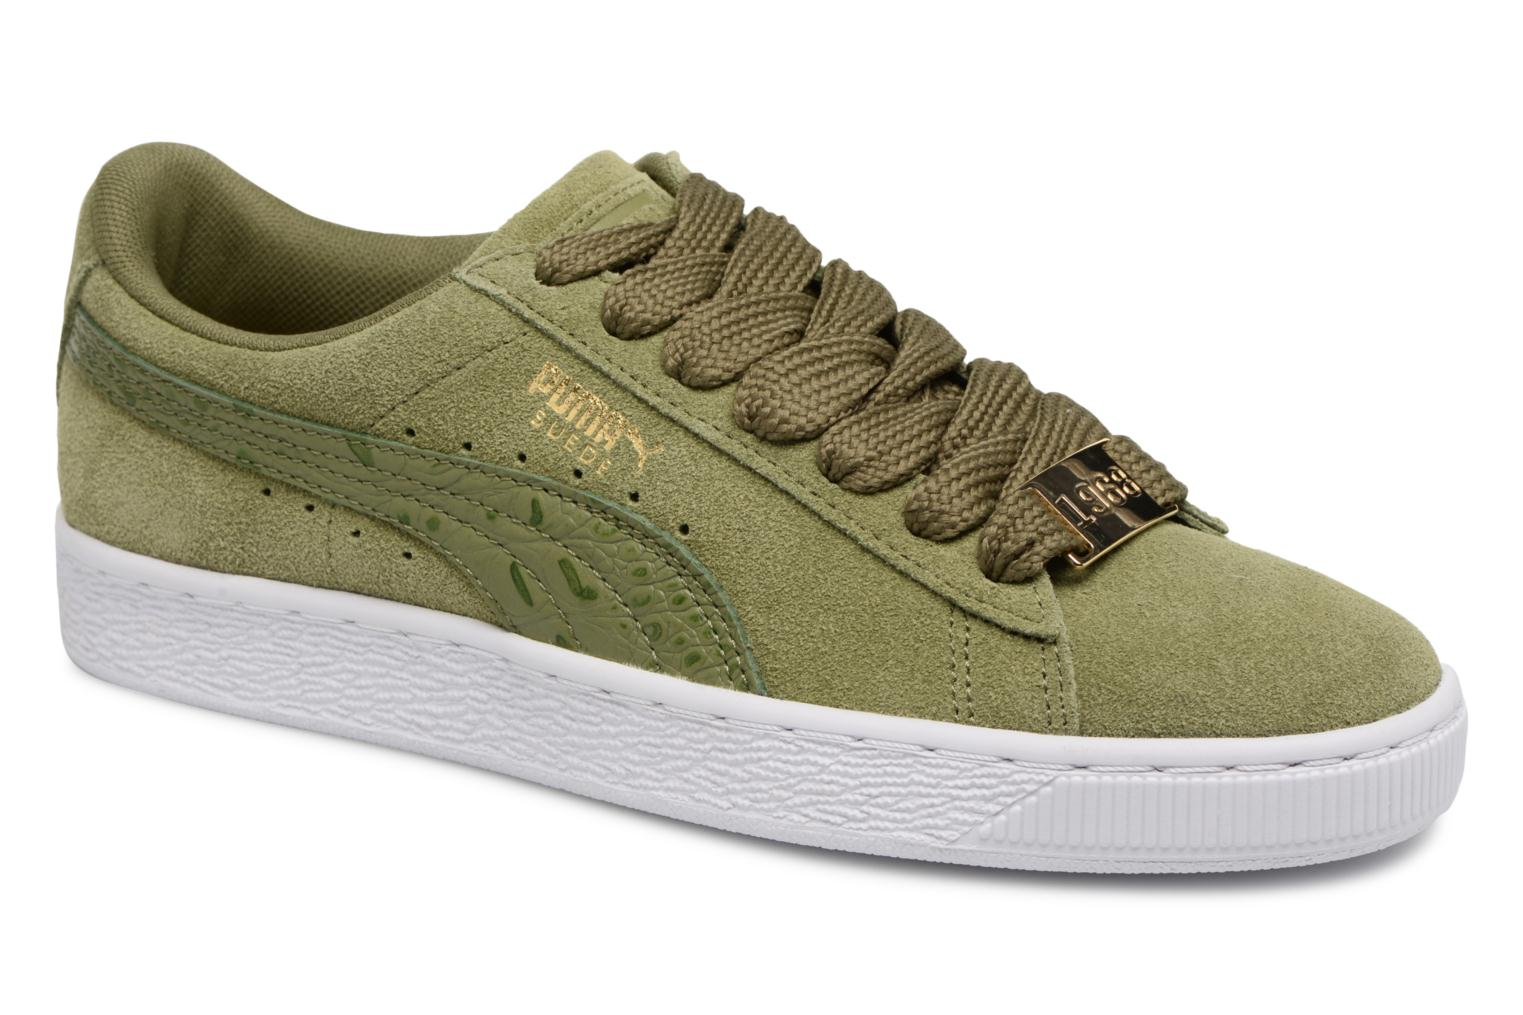 Marques Chaussure homme Puma homme Suede Classic B-BOY Fabulous Capulet Olive